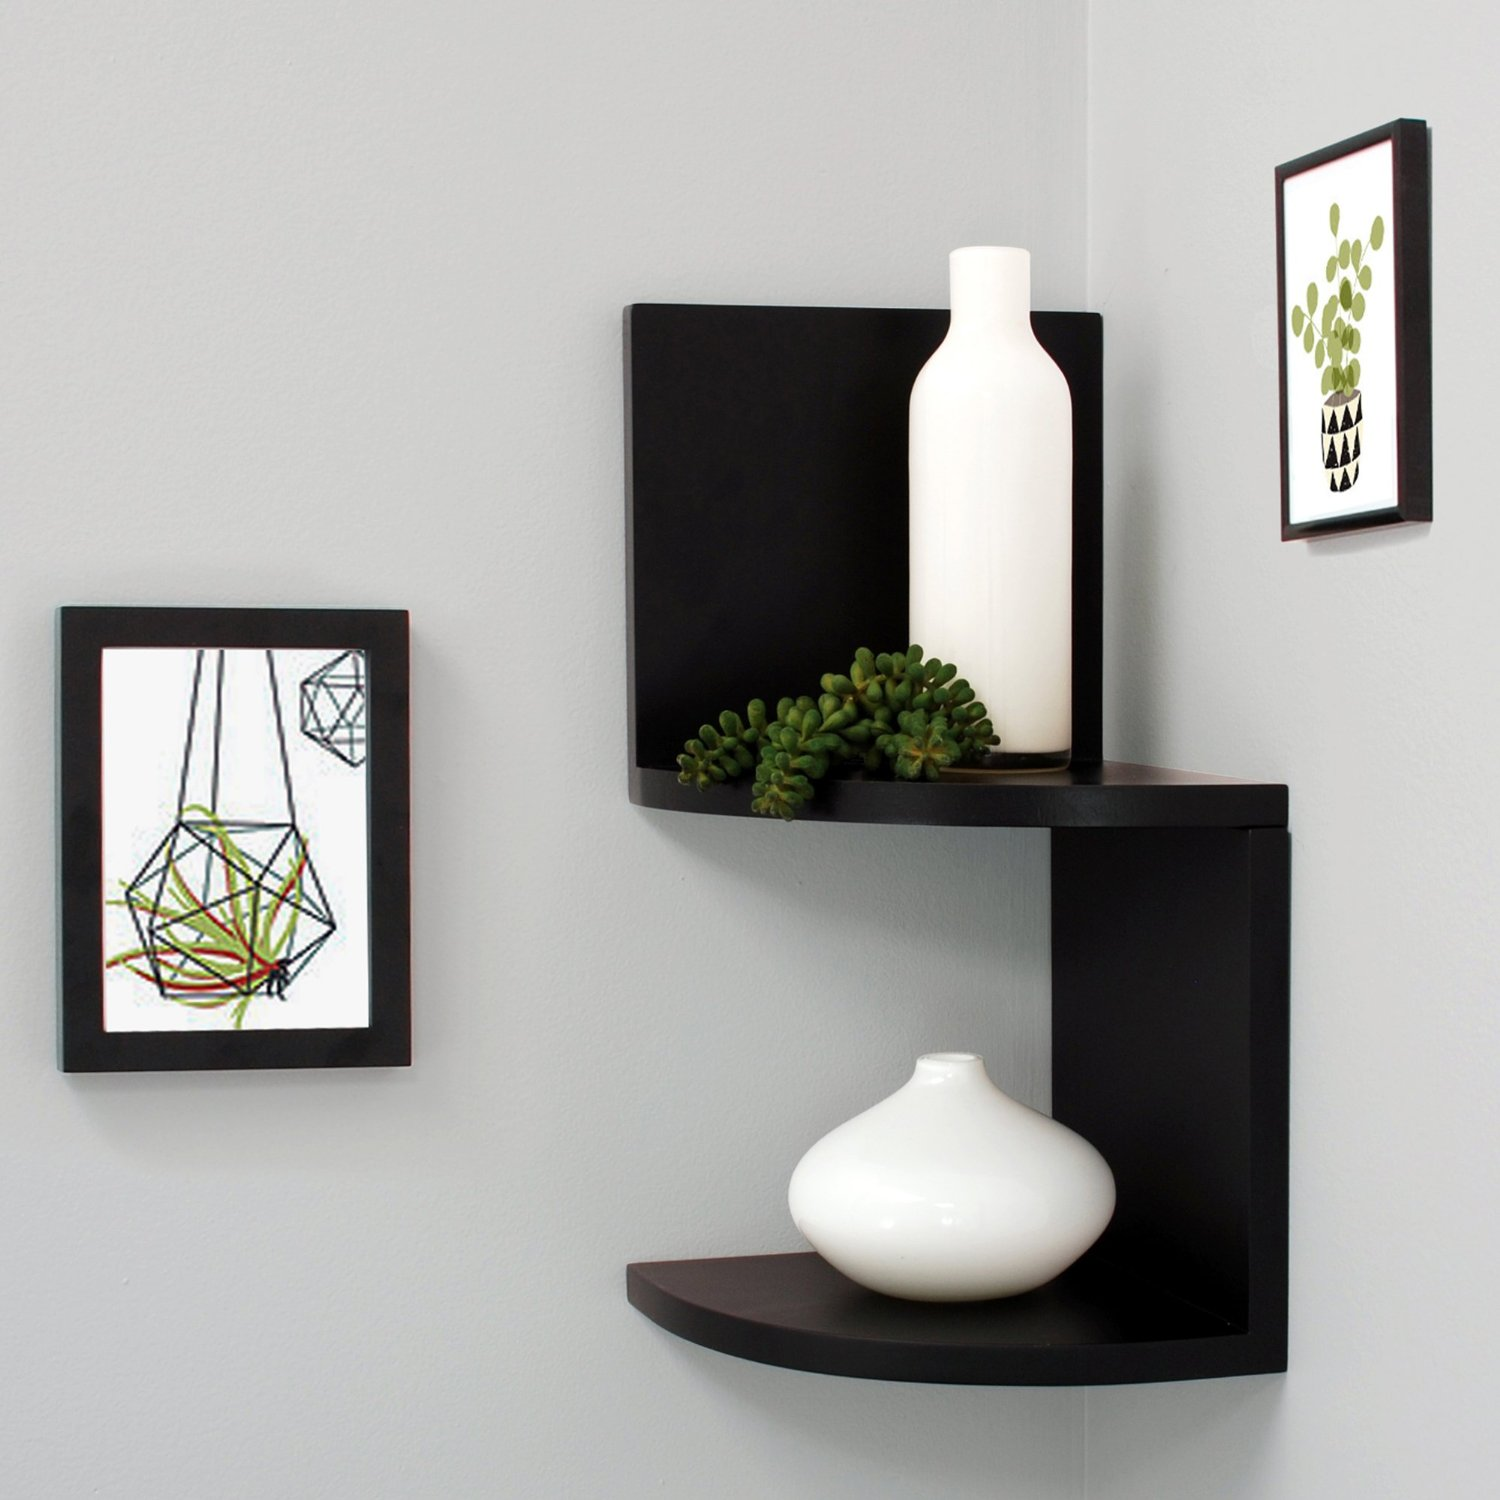 top black floating wall shelves review corner shelf ikea with lip dunelm bathroom cupboard design easy shoe rack ideas tile floor underlayment options round brackets glass shower